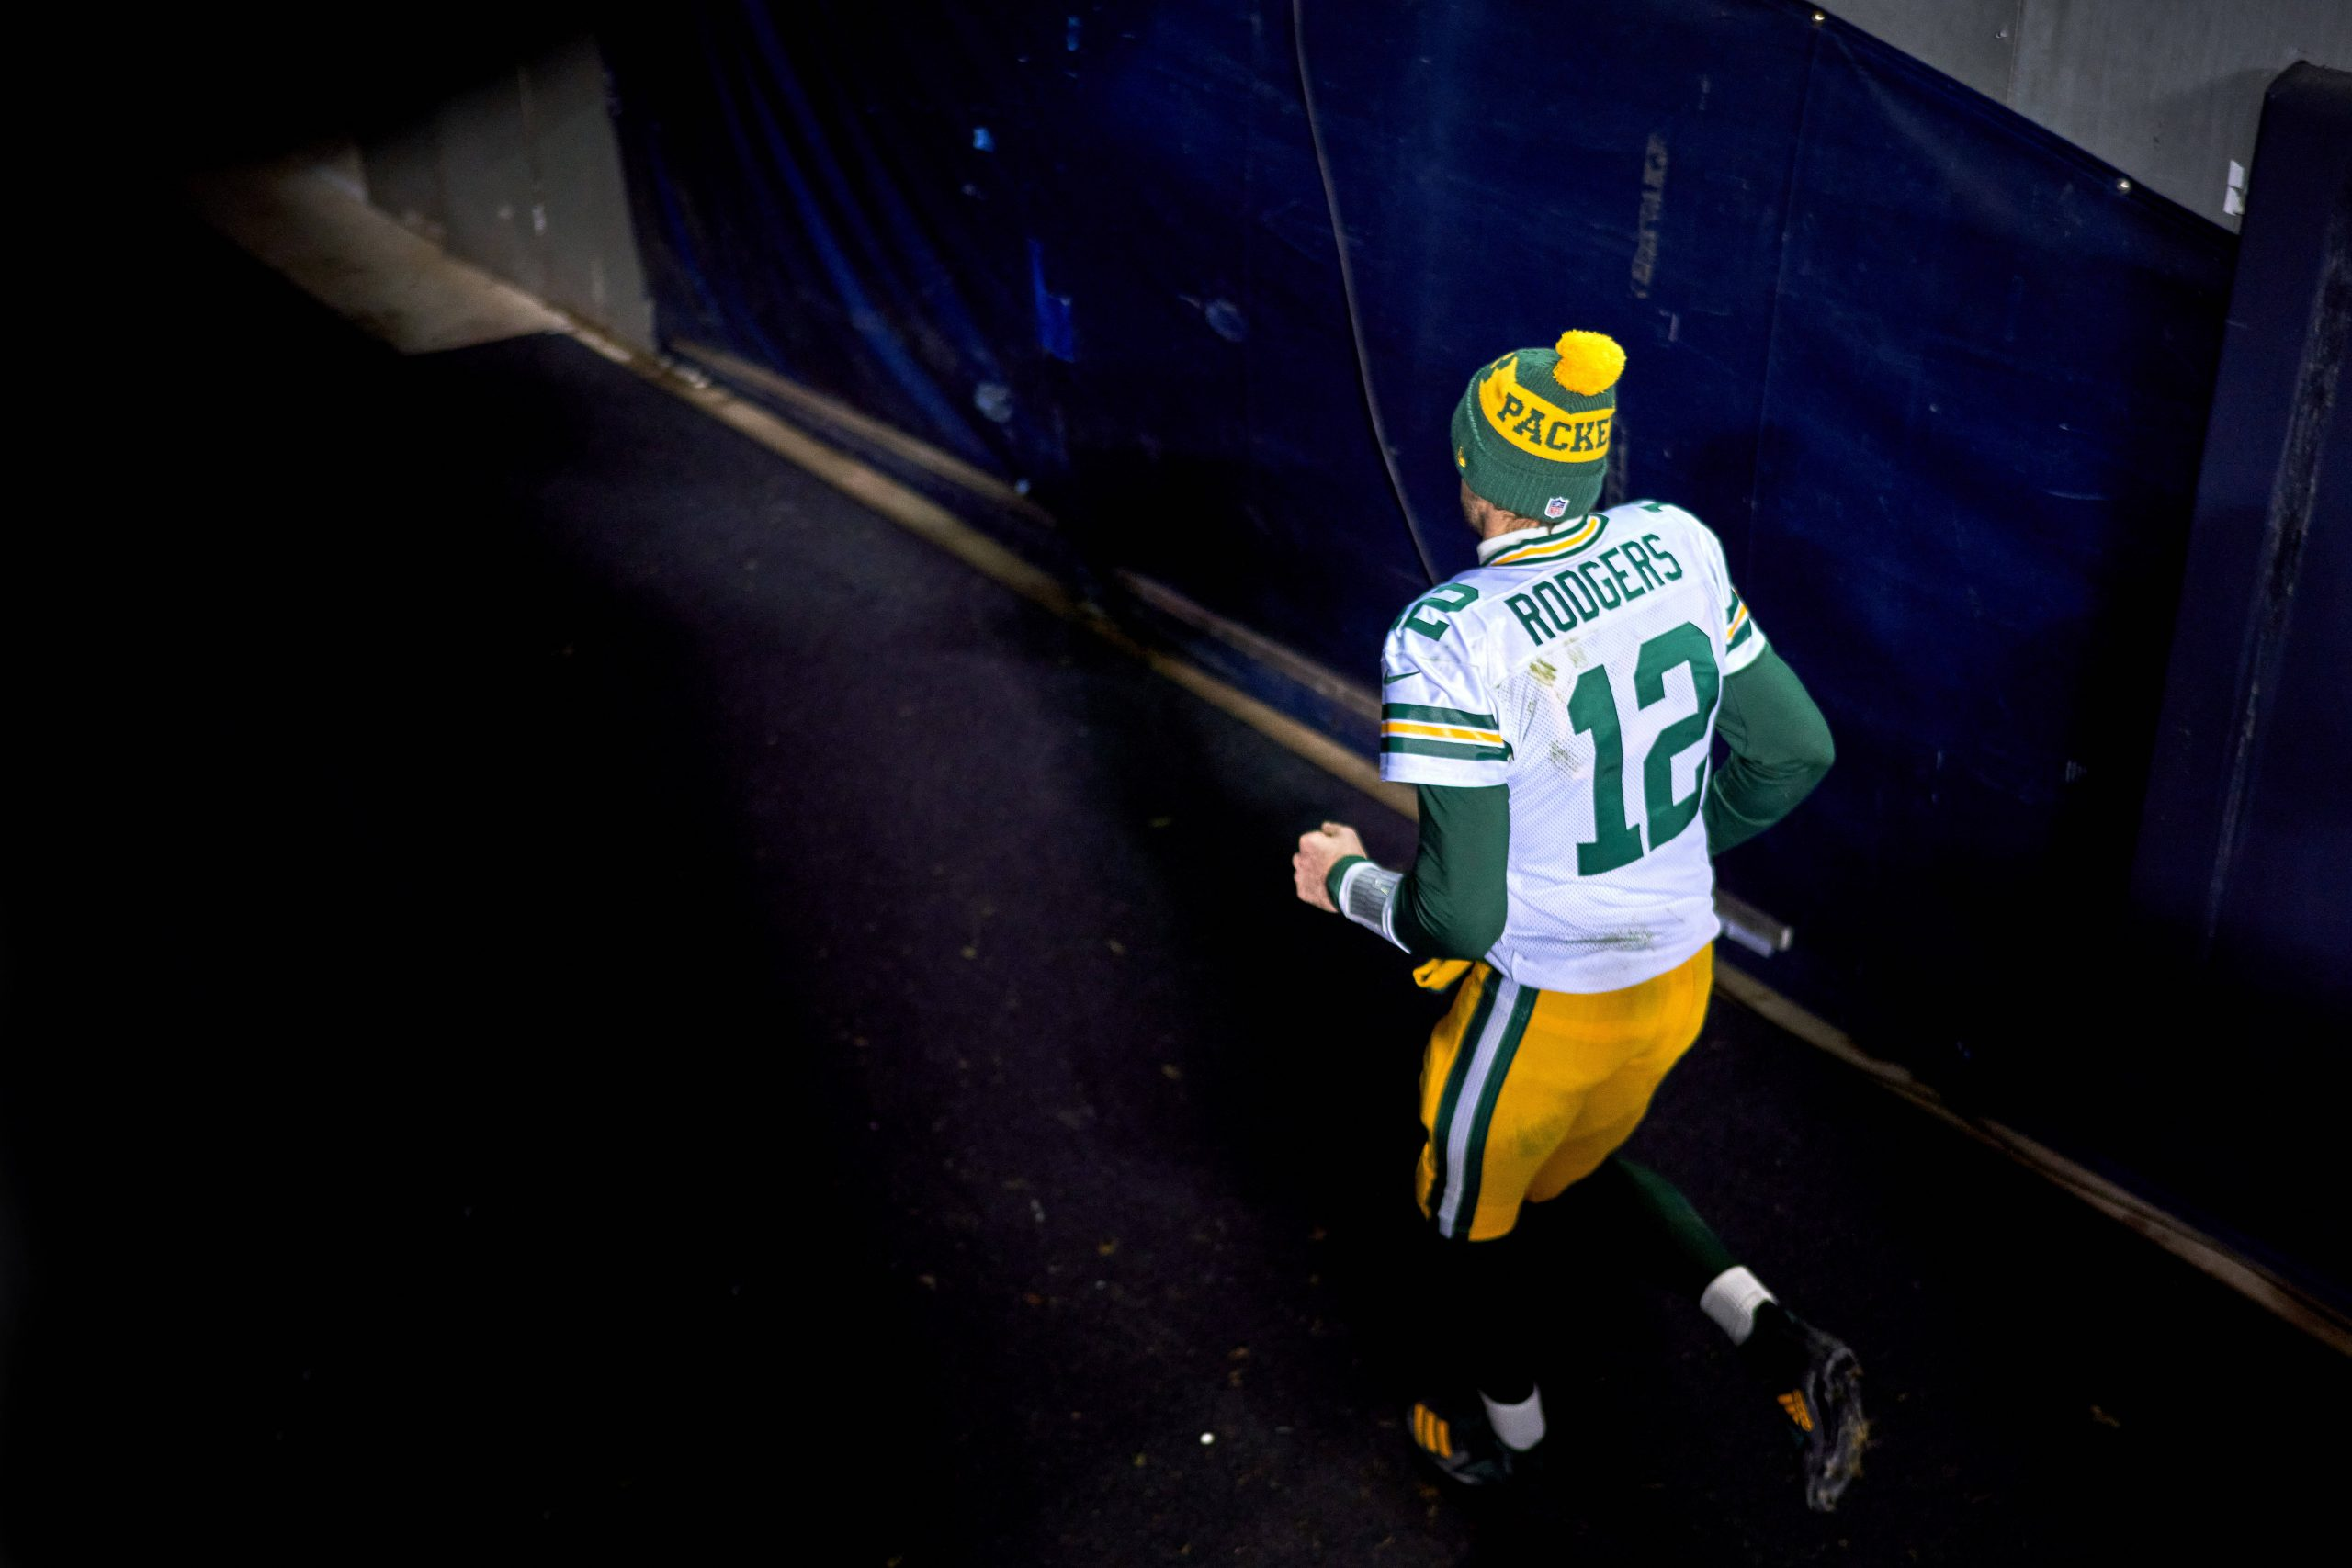 CHICAGO, IL - JANUARY 03: Green Bay Packers quarterback Aaron Rodgers (12) jogs back to the locker room after the Green